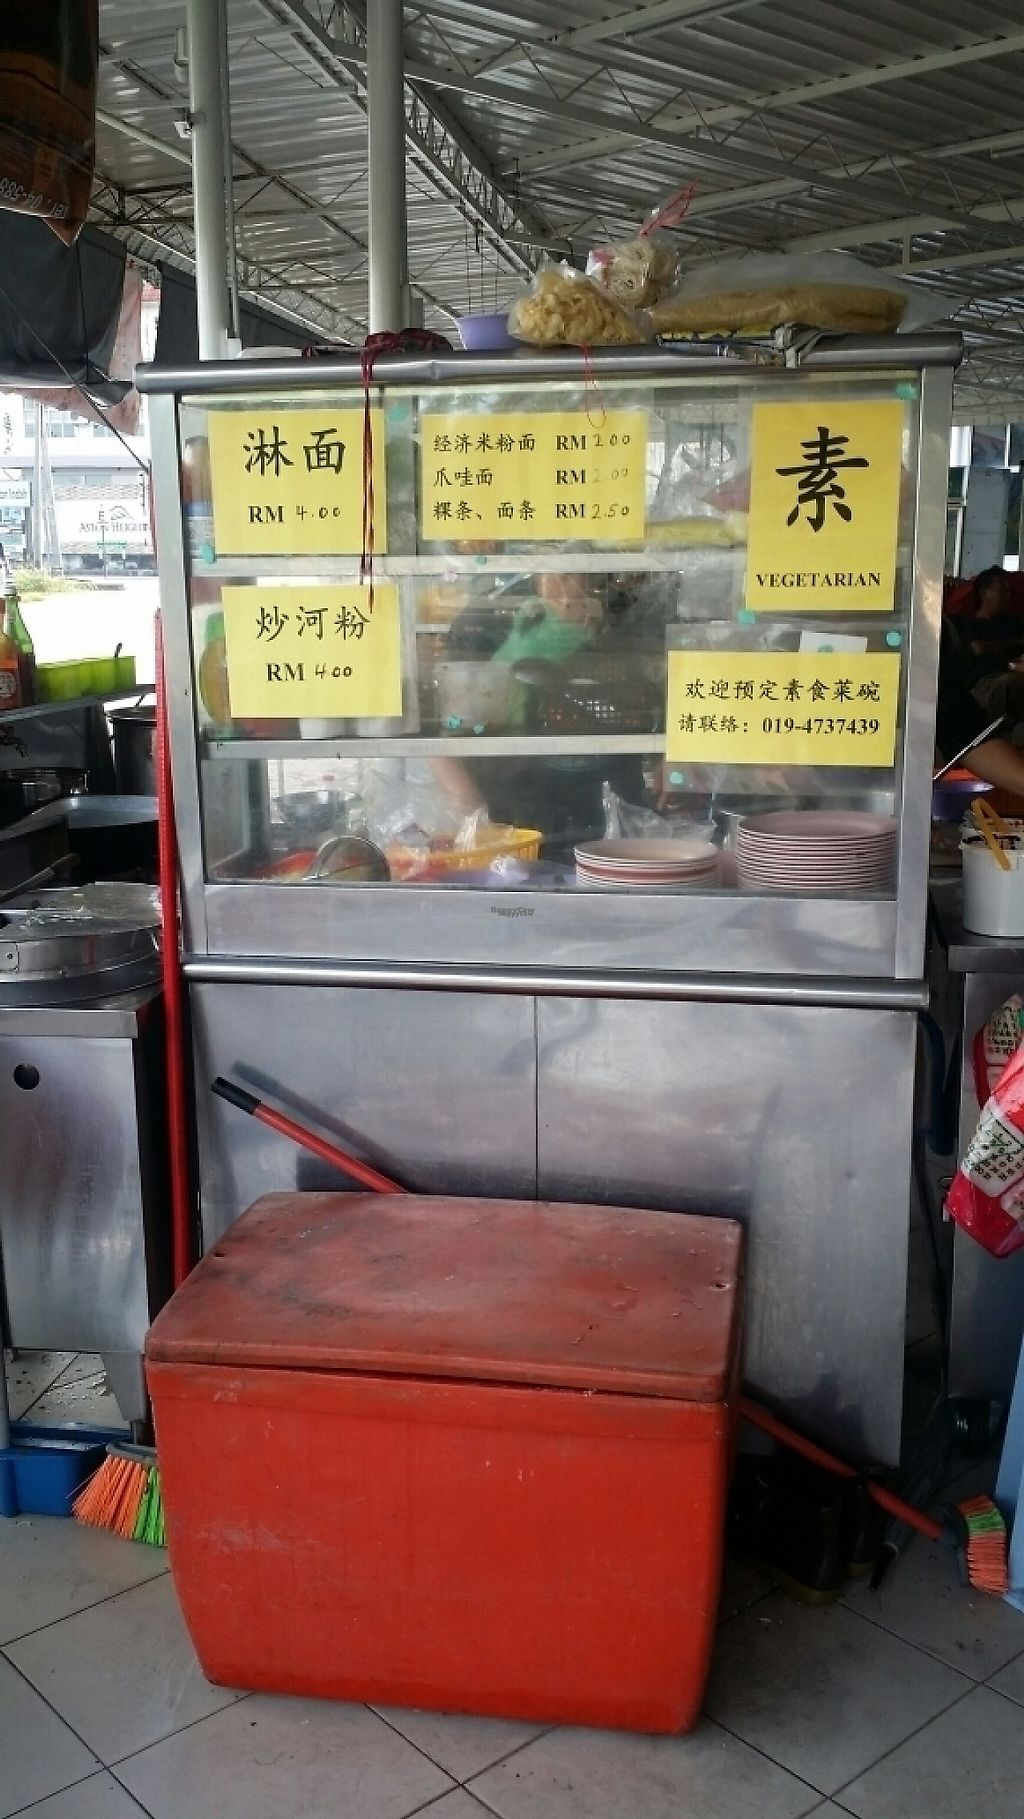 "Photo of Shing Wongkok Kopitiam - Vegetarian Stall  by <a href=""/members/profile/walter007"">walter007</a> <br/>stall <br/> February 12, 2017  - <a href='/contact/abuse/image/86903/225615'>Report</a>"